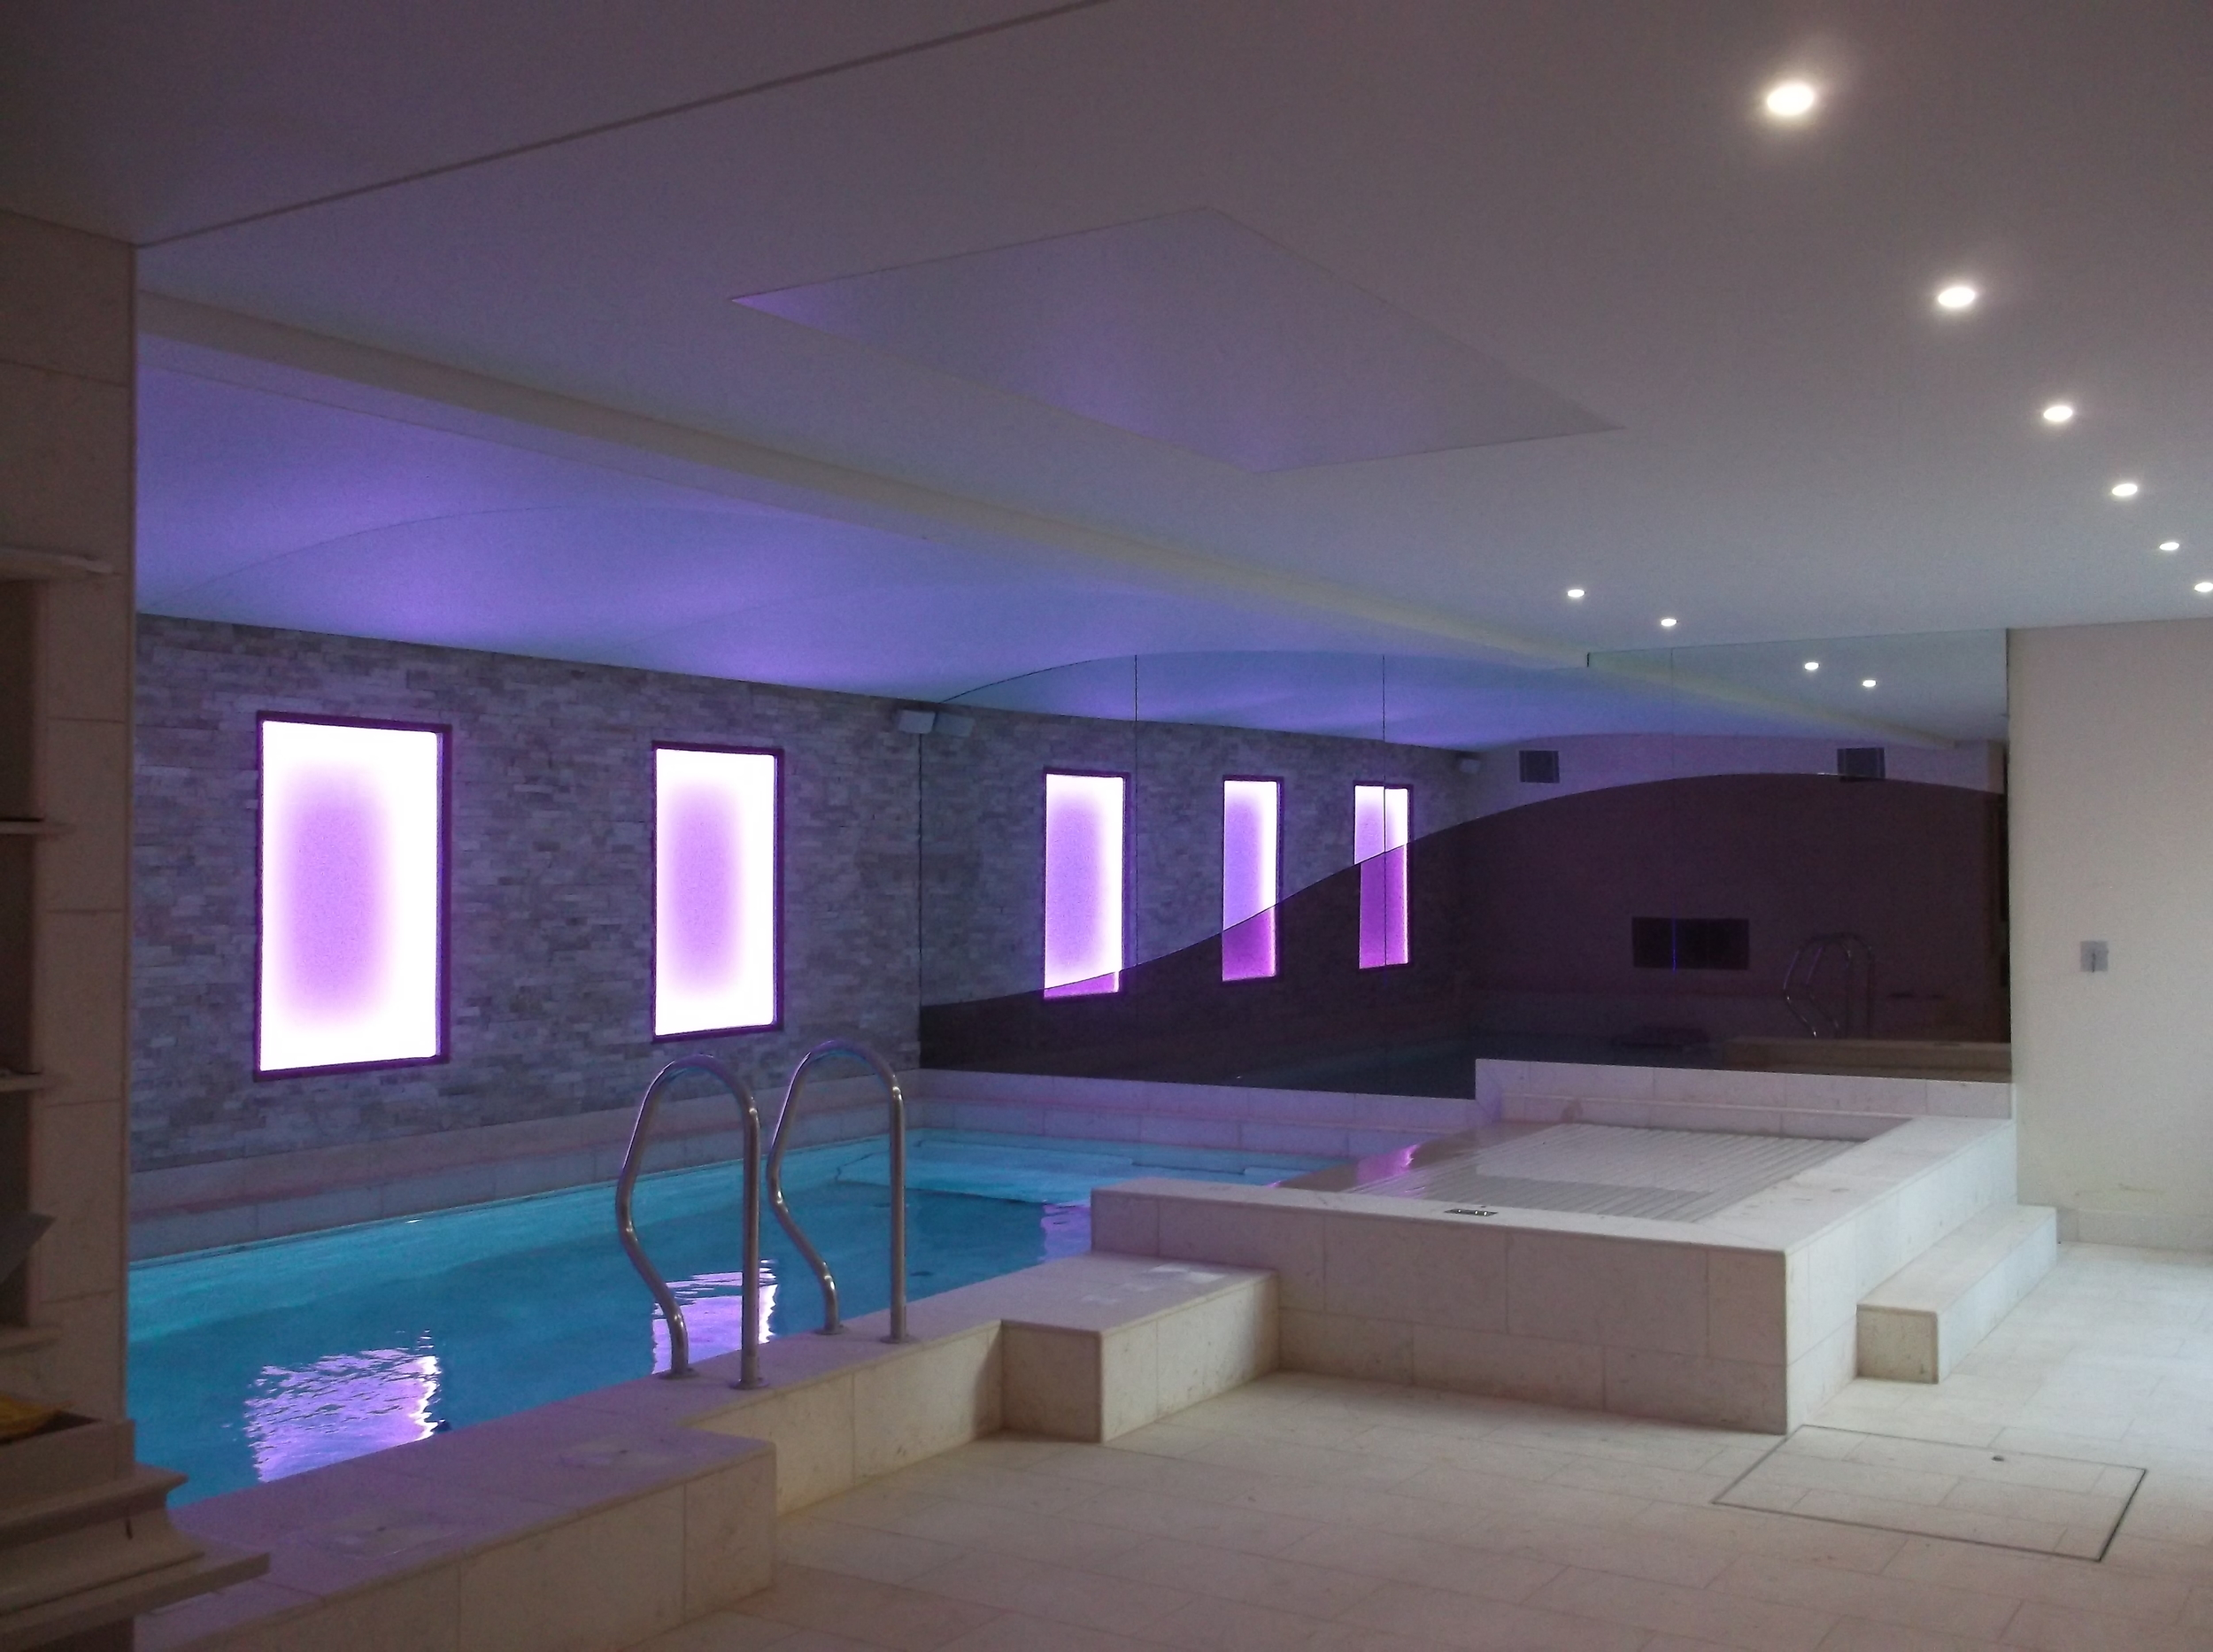 Swimming Pool Ceilings and Lighting